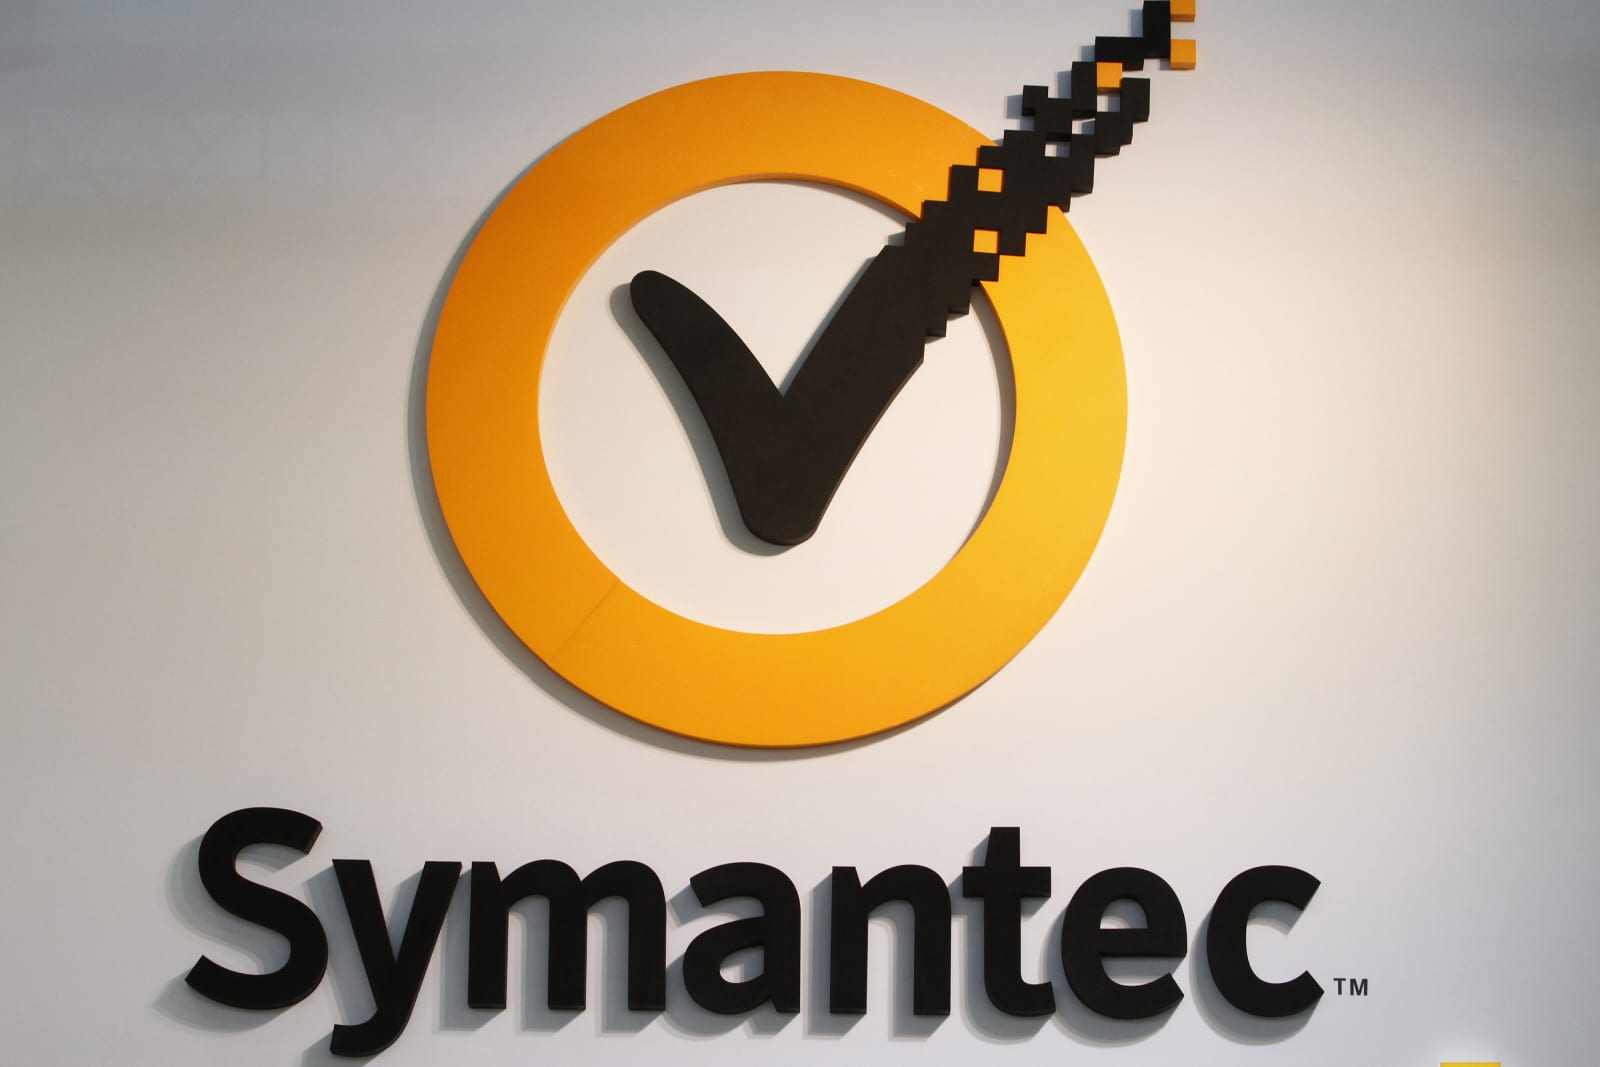 Google and symantec go to war over our internet security bloomberg via getty images 1betcityfo Images